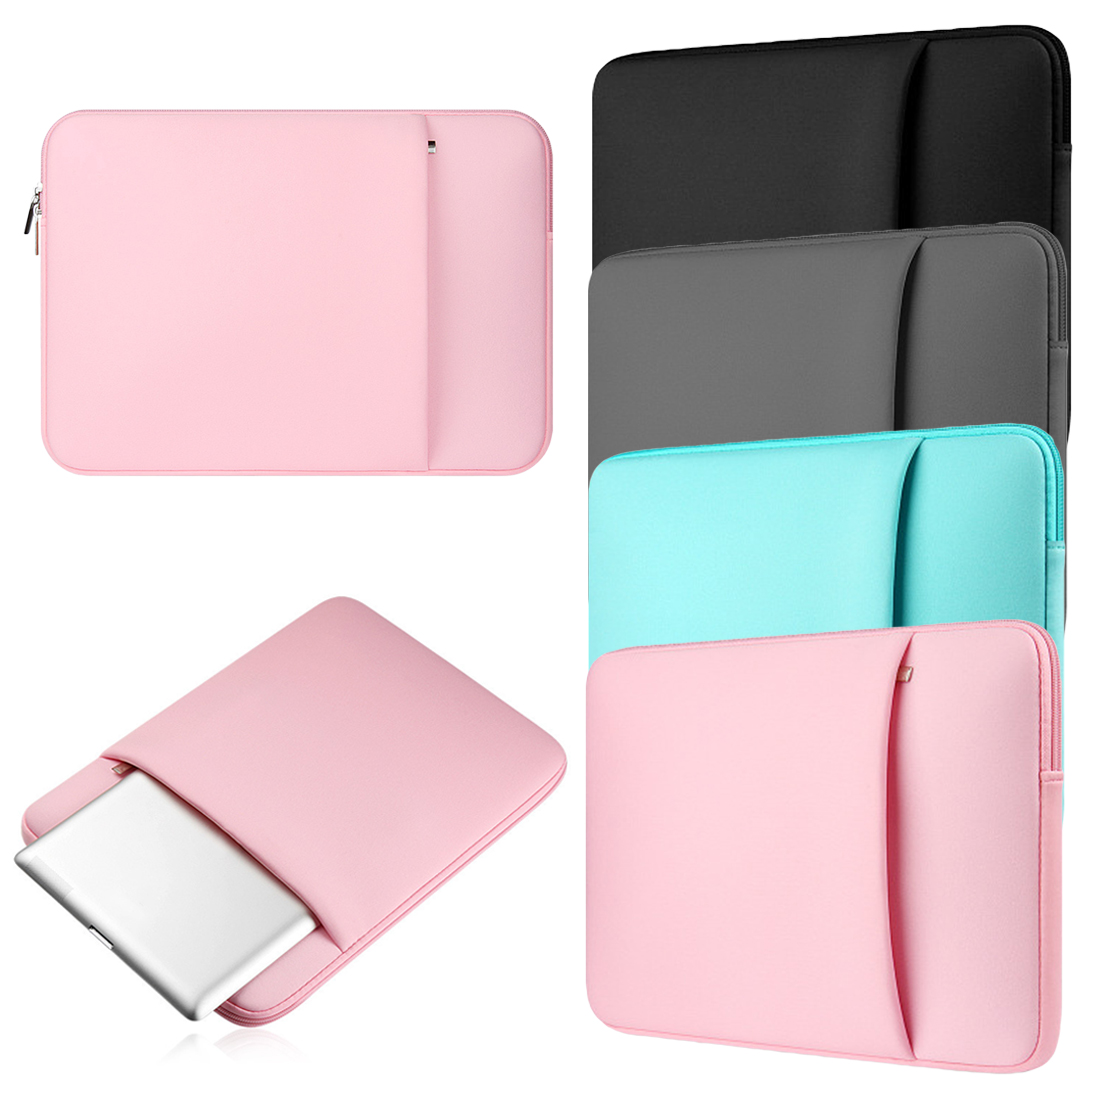 New Laptop Bags Sleeve Notebook Case For Lenovo Macbook Air 11 12 13 14 15 15.6 Inch Cover Retina Pro 13.3